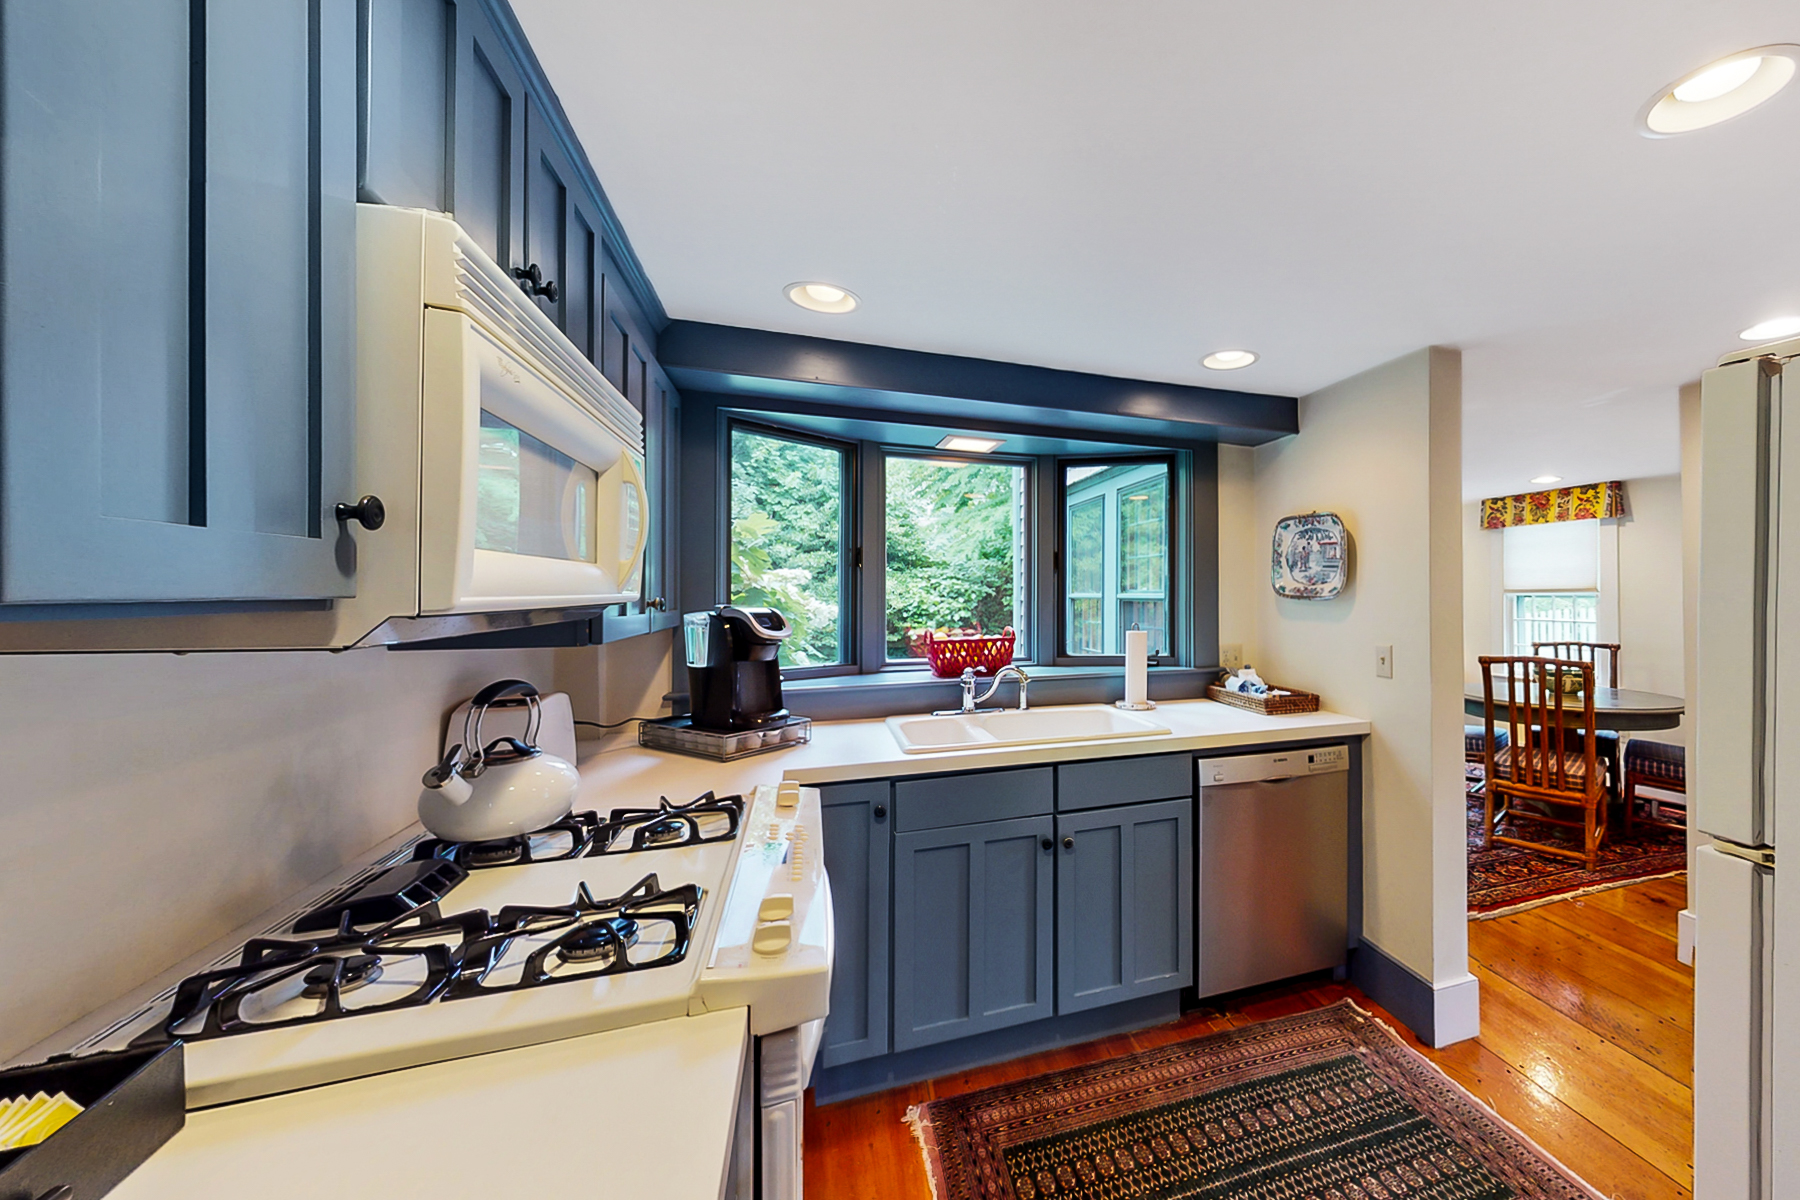 Additional photo for property listing at 'Benjamin Mason House' 25 Brewer Street Newport, Rhode Island 02840 United States